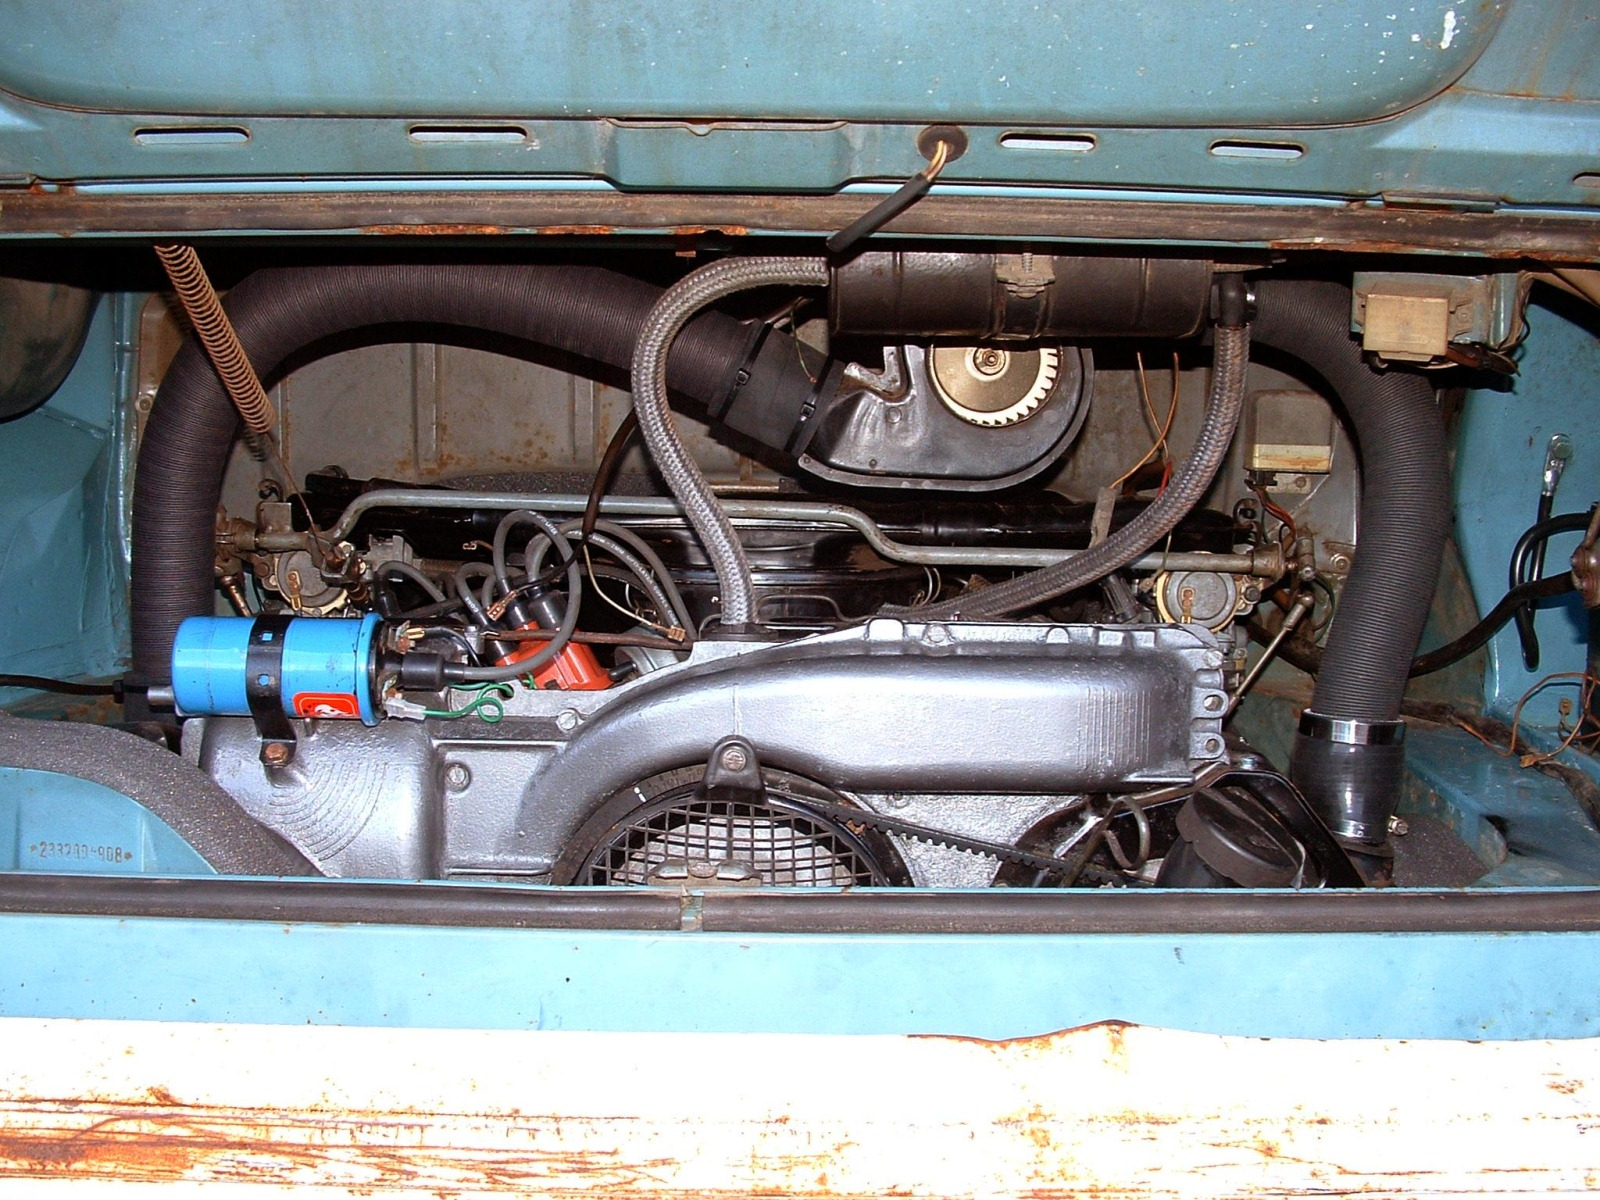 1973 Vw Beetle Engine Compartment Wiring 72 Volkswagen Diagram Thesamba Com Bay Window Bus View Topic Rh 1967 Harness